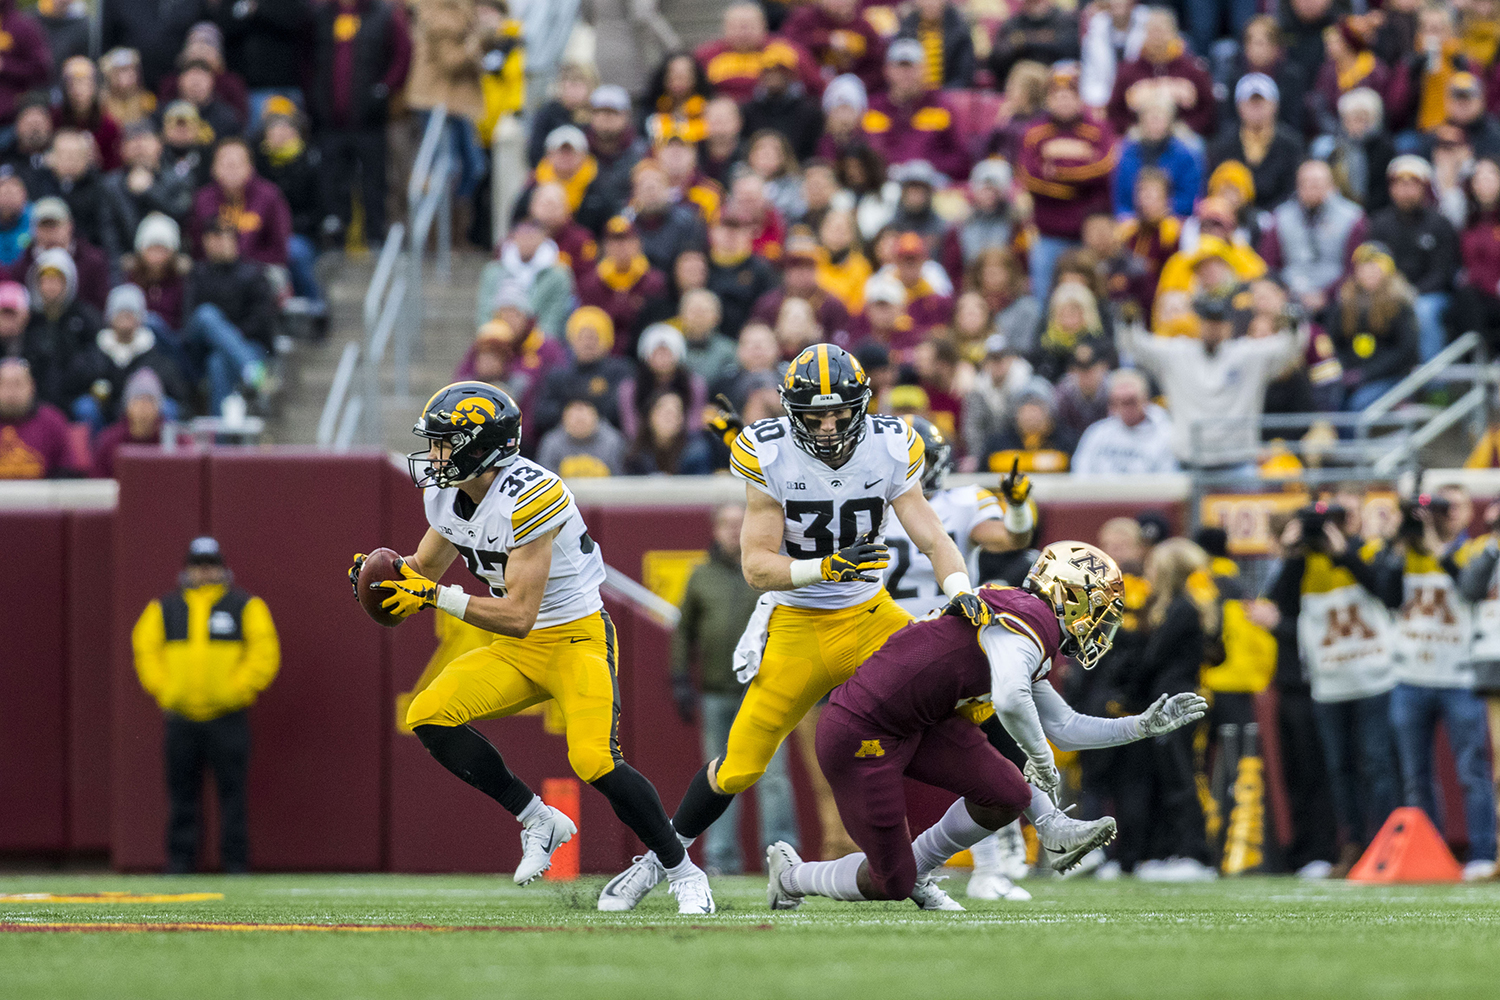 Iowa%27s+Riley+Moss+%2833%29+runs+with+an+interception+he+caught+during+the+Iowa%2FMinnesota+football+game+at+TCF+Bank+Stadium+in+Minneapolis+on+Saturday%2C+October+6%2C+2018.+The+Hawkeyes+defeated+the+Golden+Gophers%2C+48-31.+